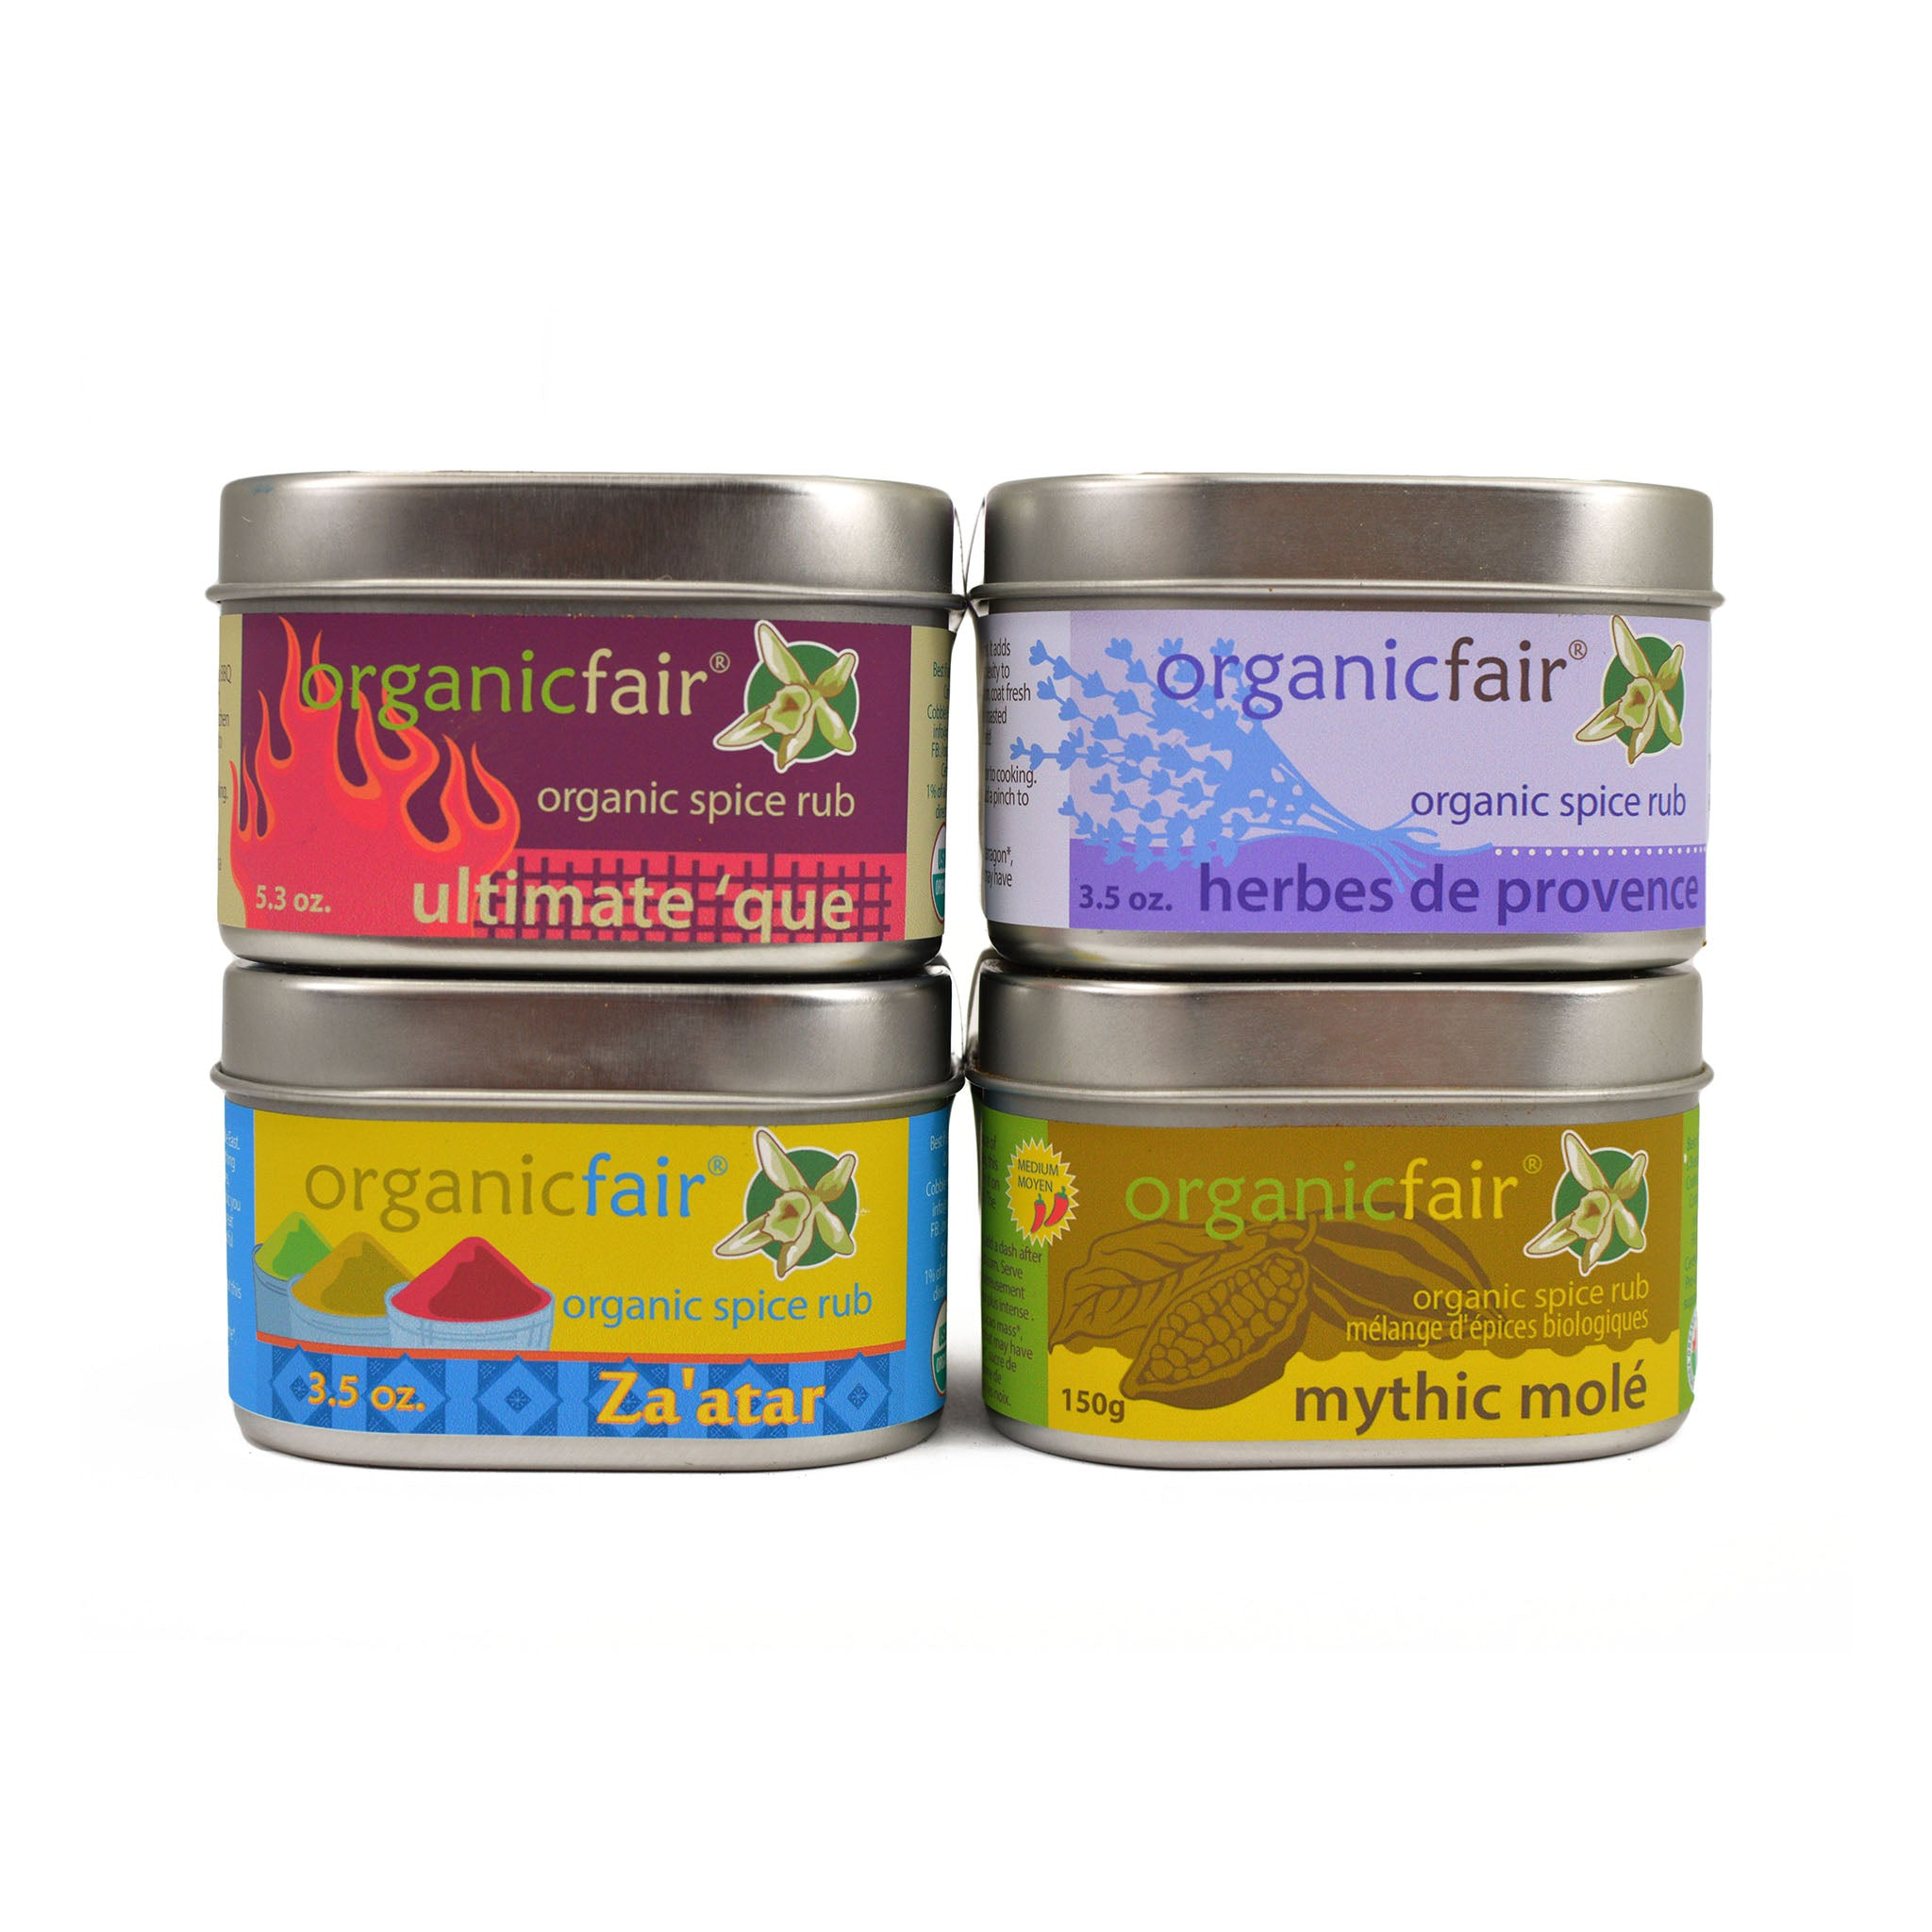 organicfair spice rub sampler set fronts